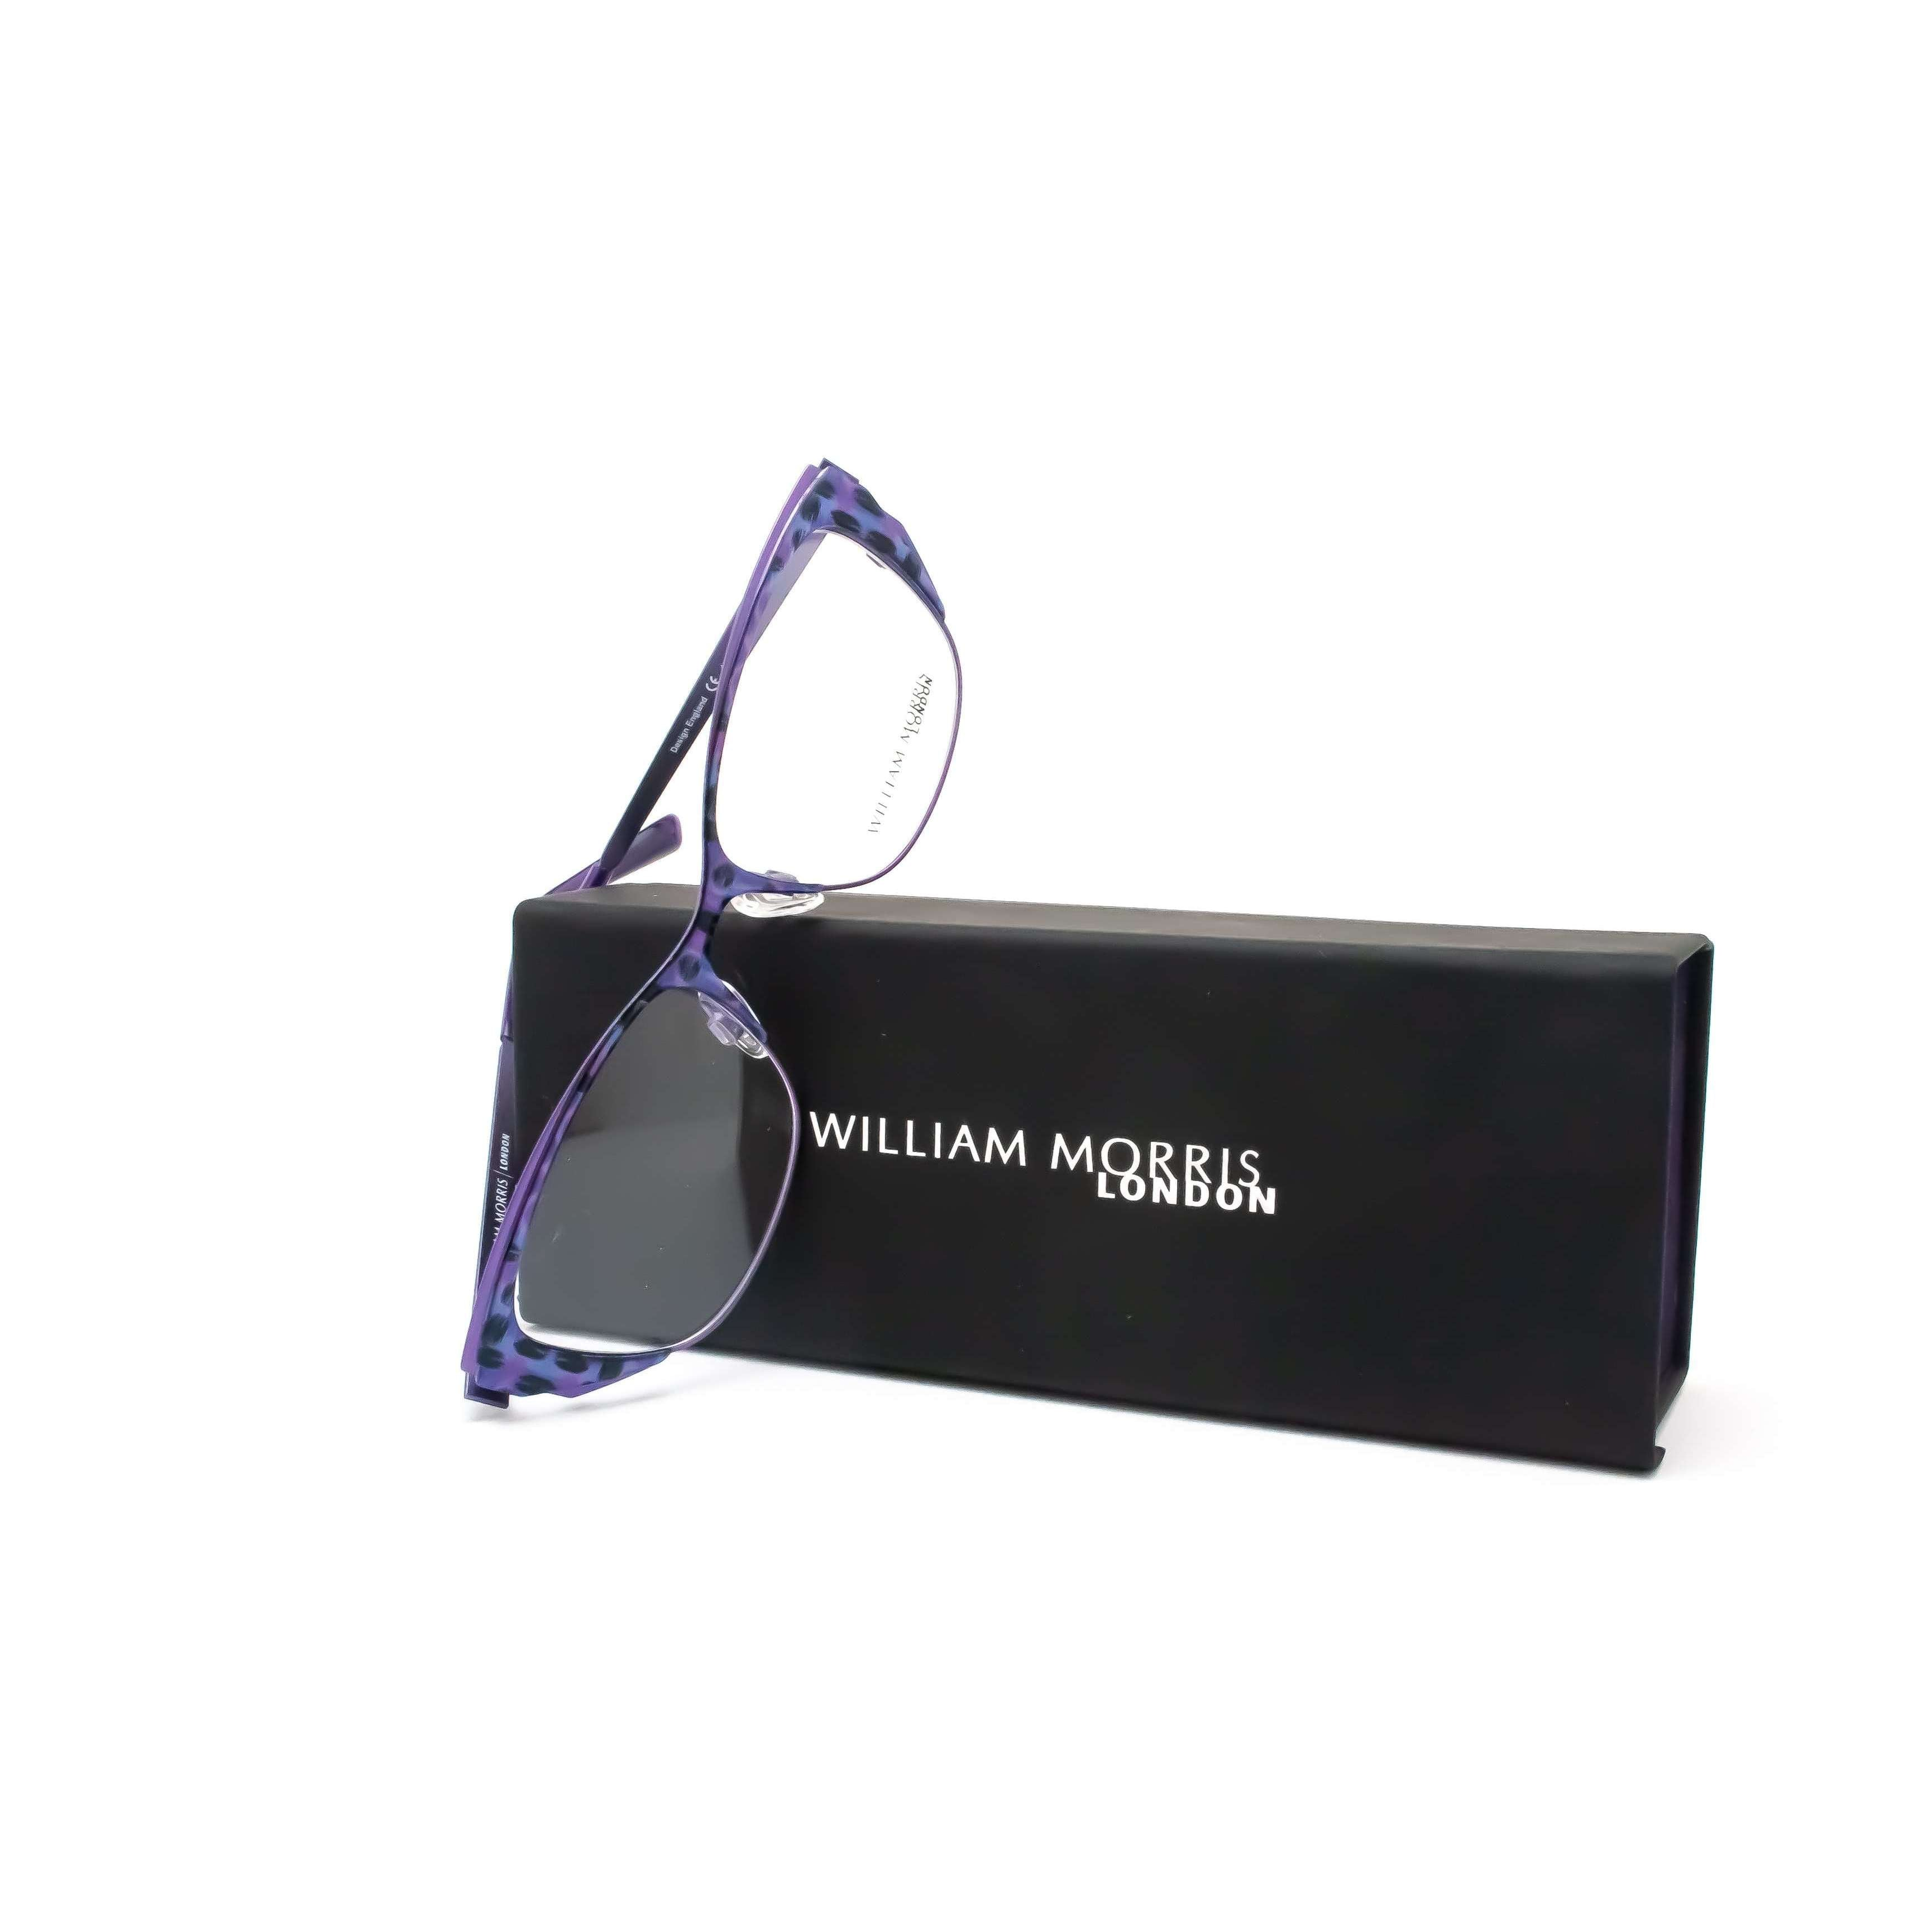 William Morris London 4141 Animal Print Glasses